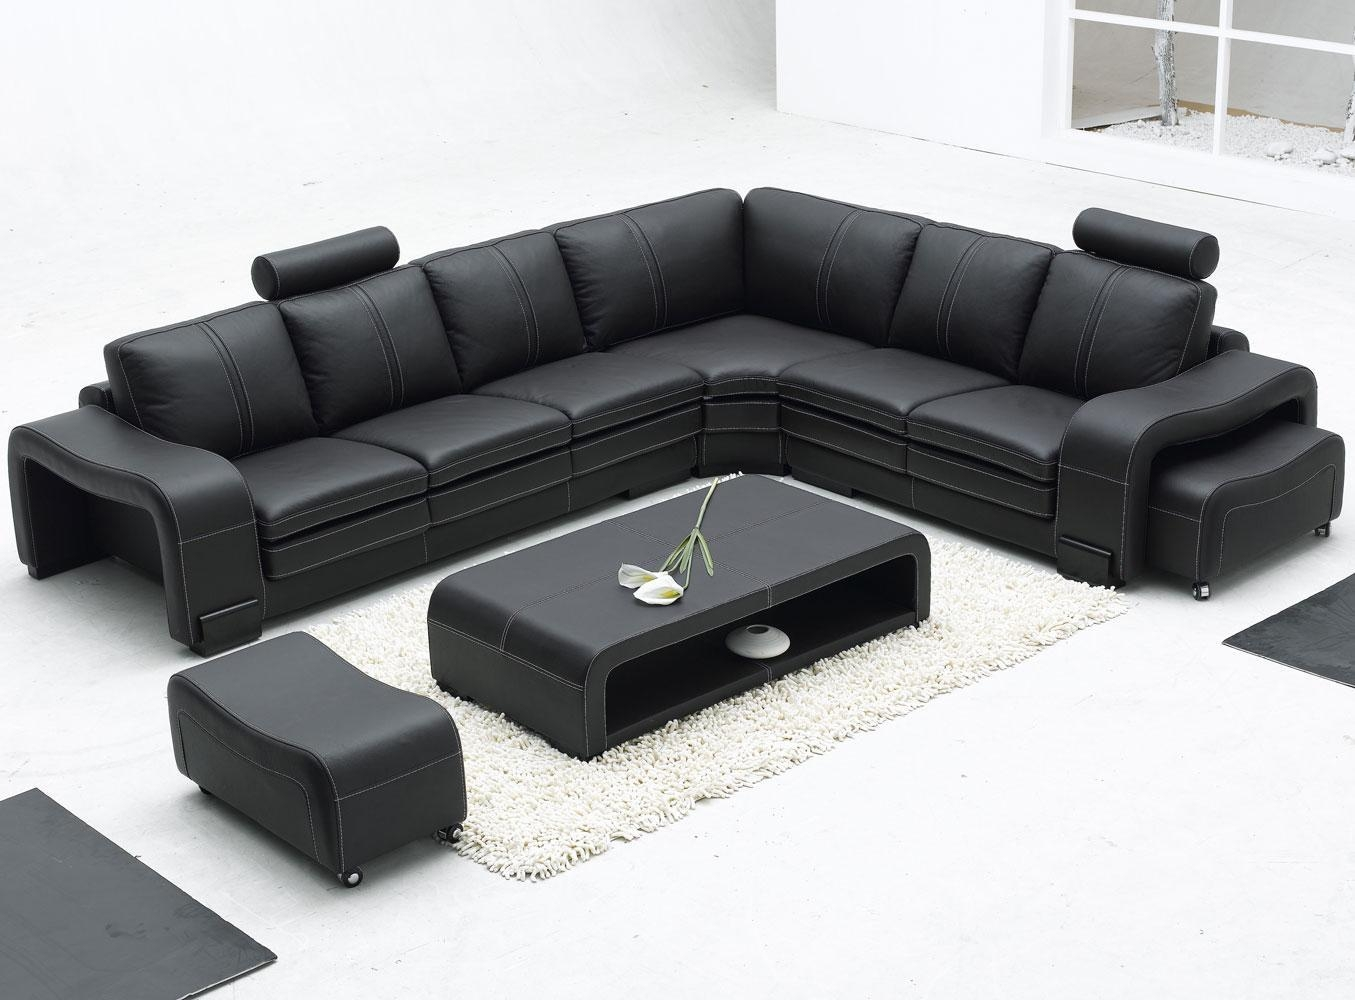 Furniture: Modern Bonded Leather Sectional Sofa In Black And Regarding Leather Modern Sectional Sofas (Image 9 of 20)